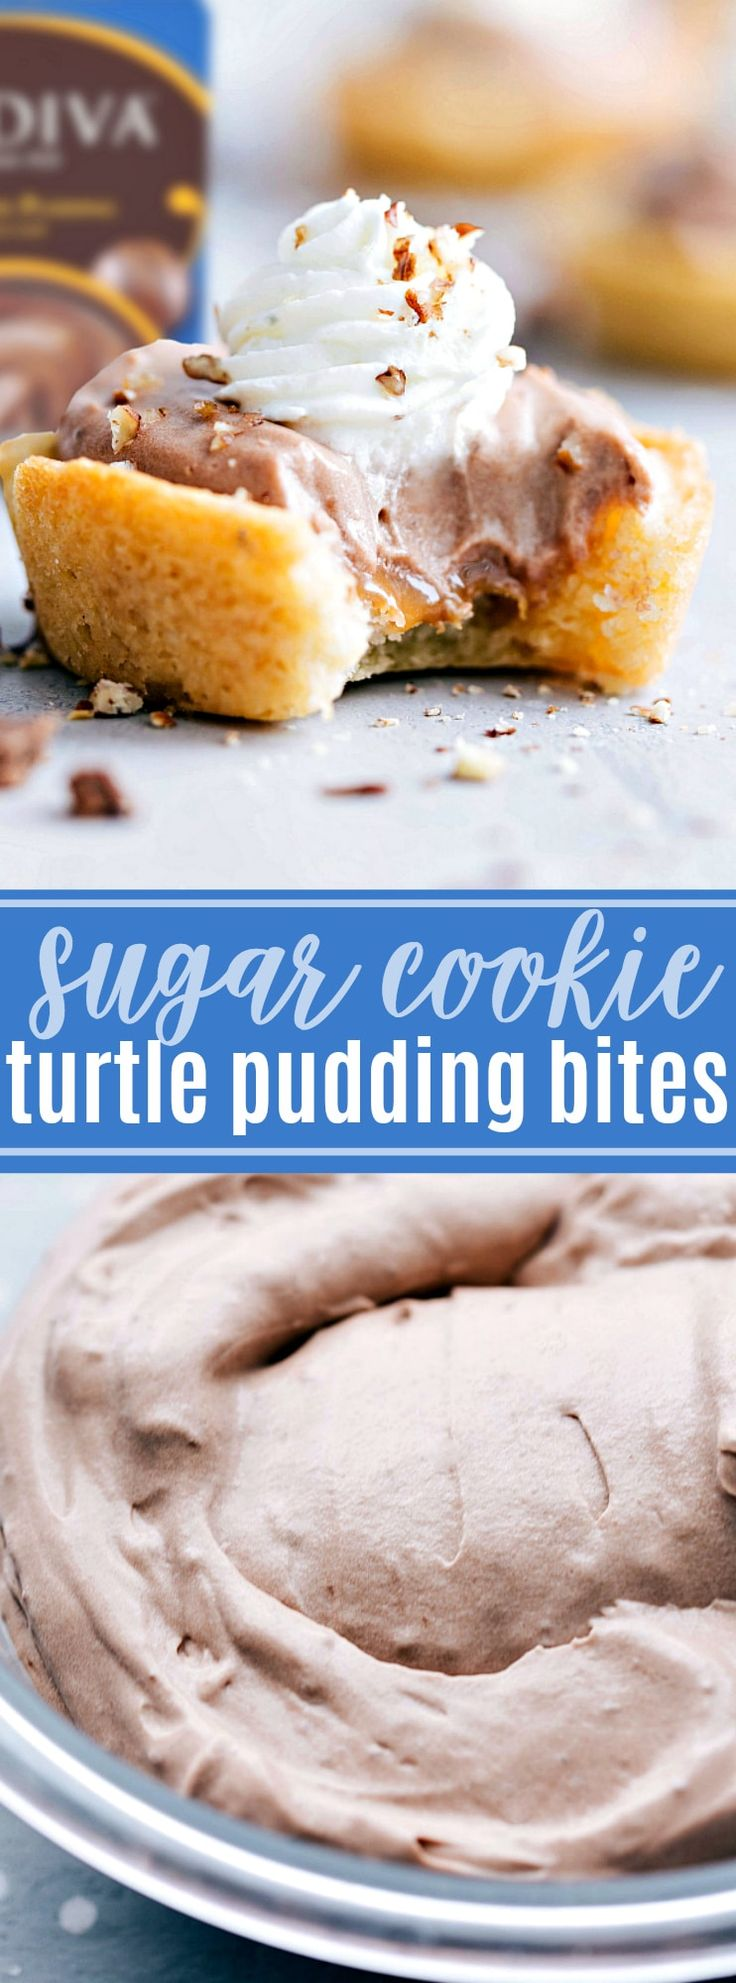 #ad Delicious and decadent chocolate turtle pudding cups made with @GODIVA pudding and only 5 other ingredients | chelseasmessyapron.com | #pudding #GODIVA #chocolate #dessert #turtle